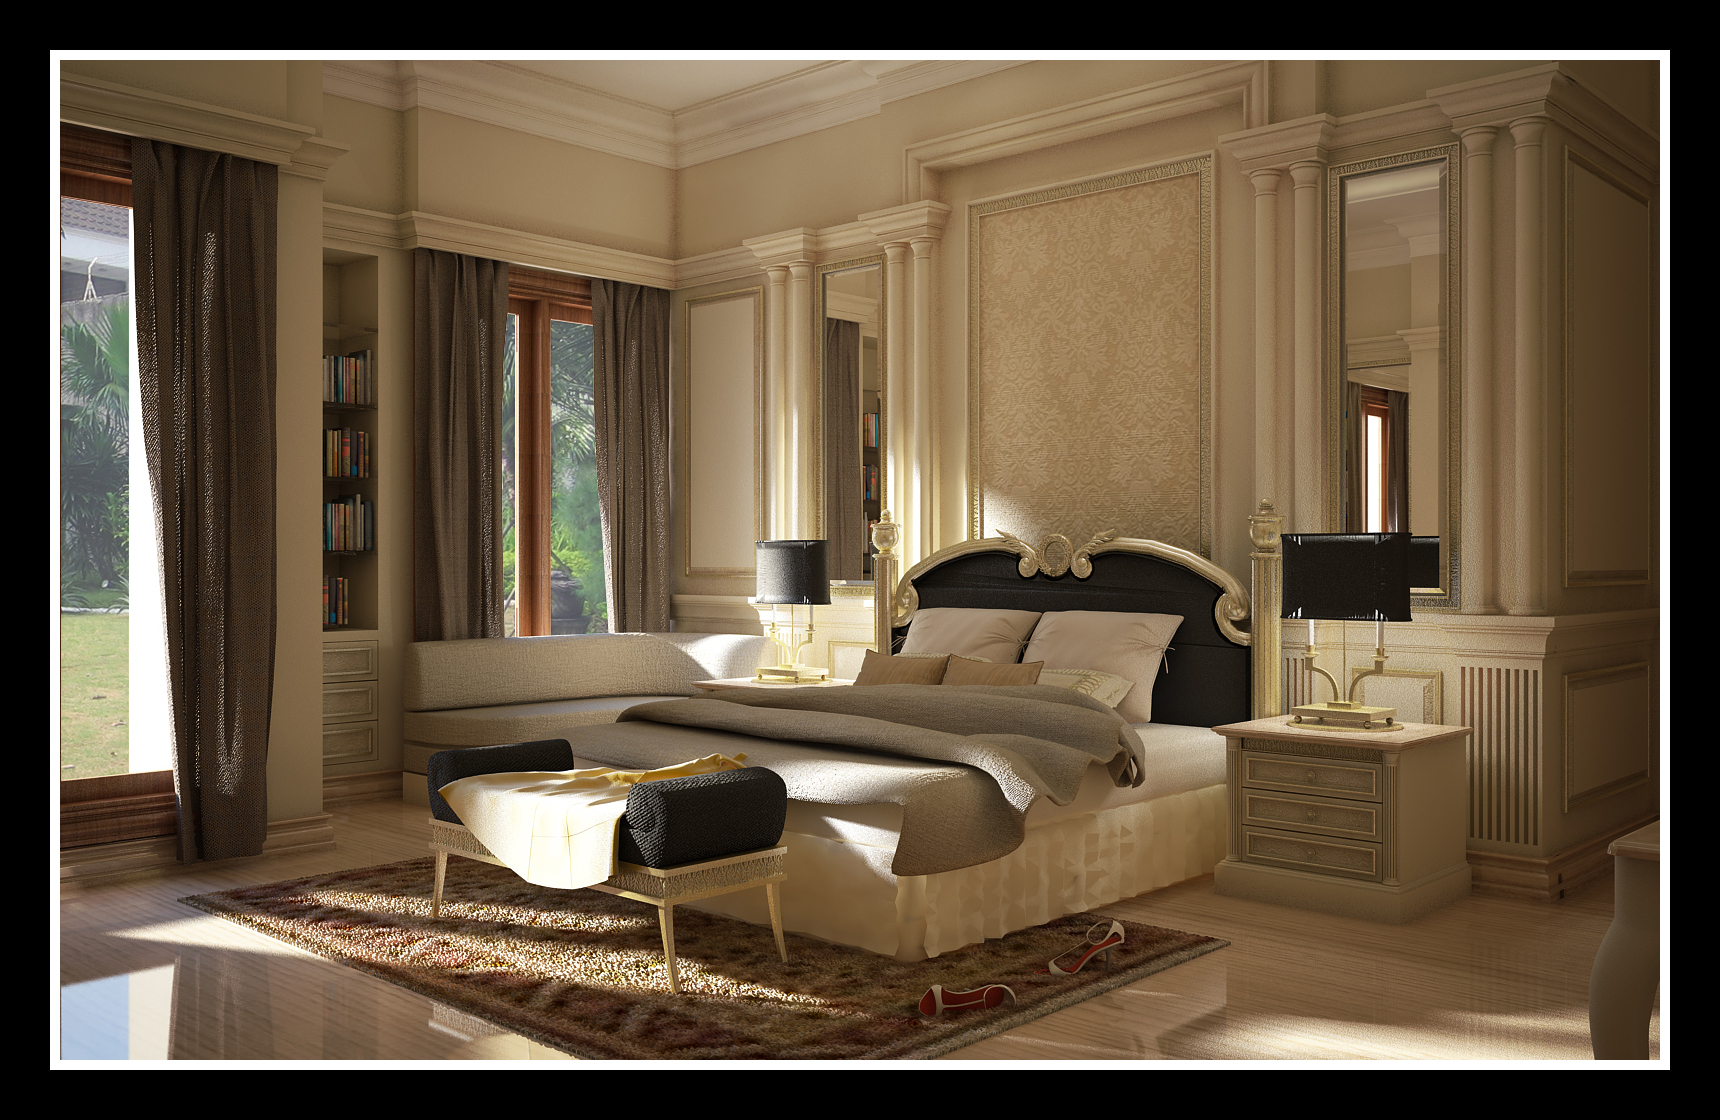 Interior design 3d home designer for Luxury interior design